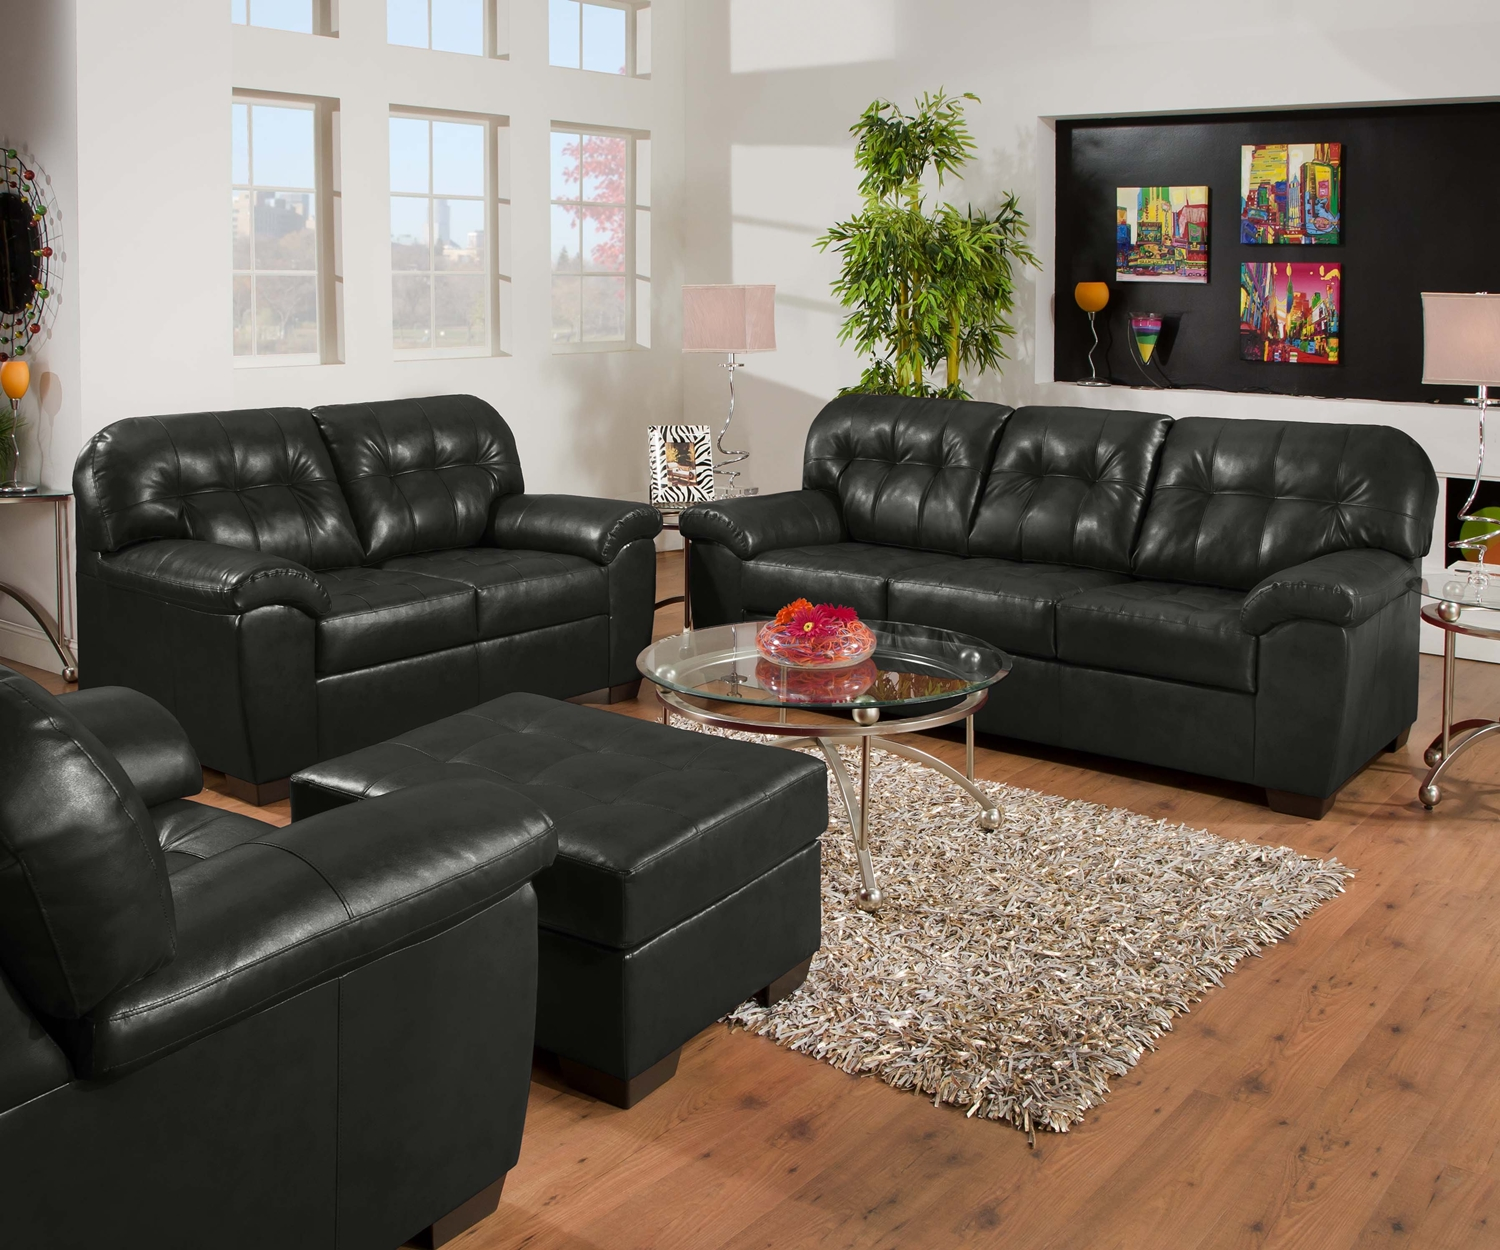 Black Living Room Furniture: Soho Onyx Black Contemporary Tufted Bonded Leather Living